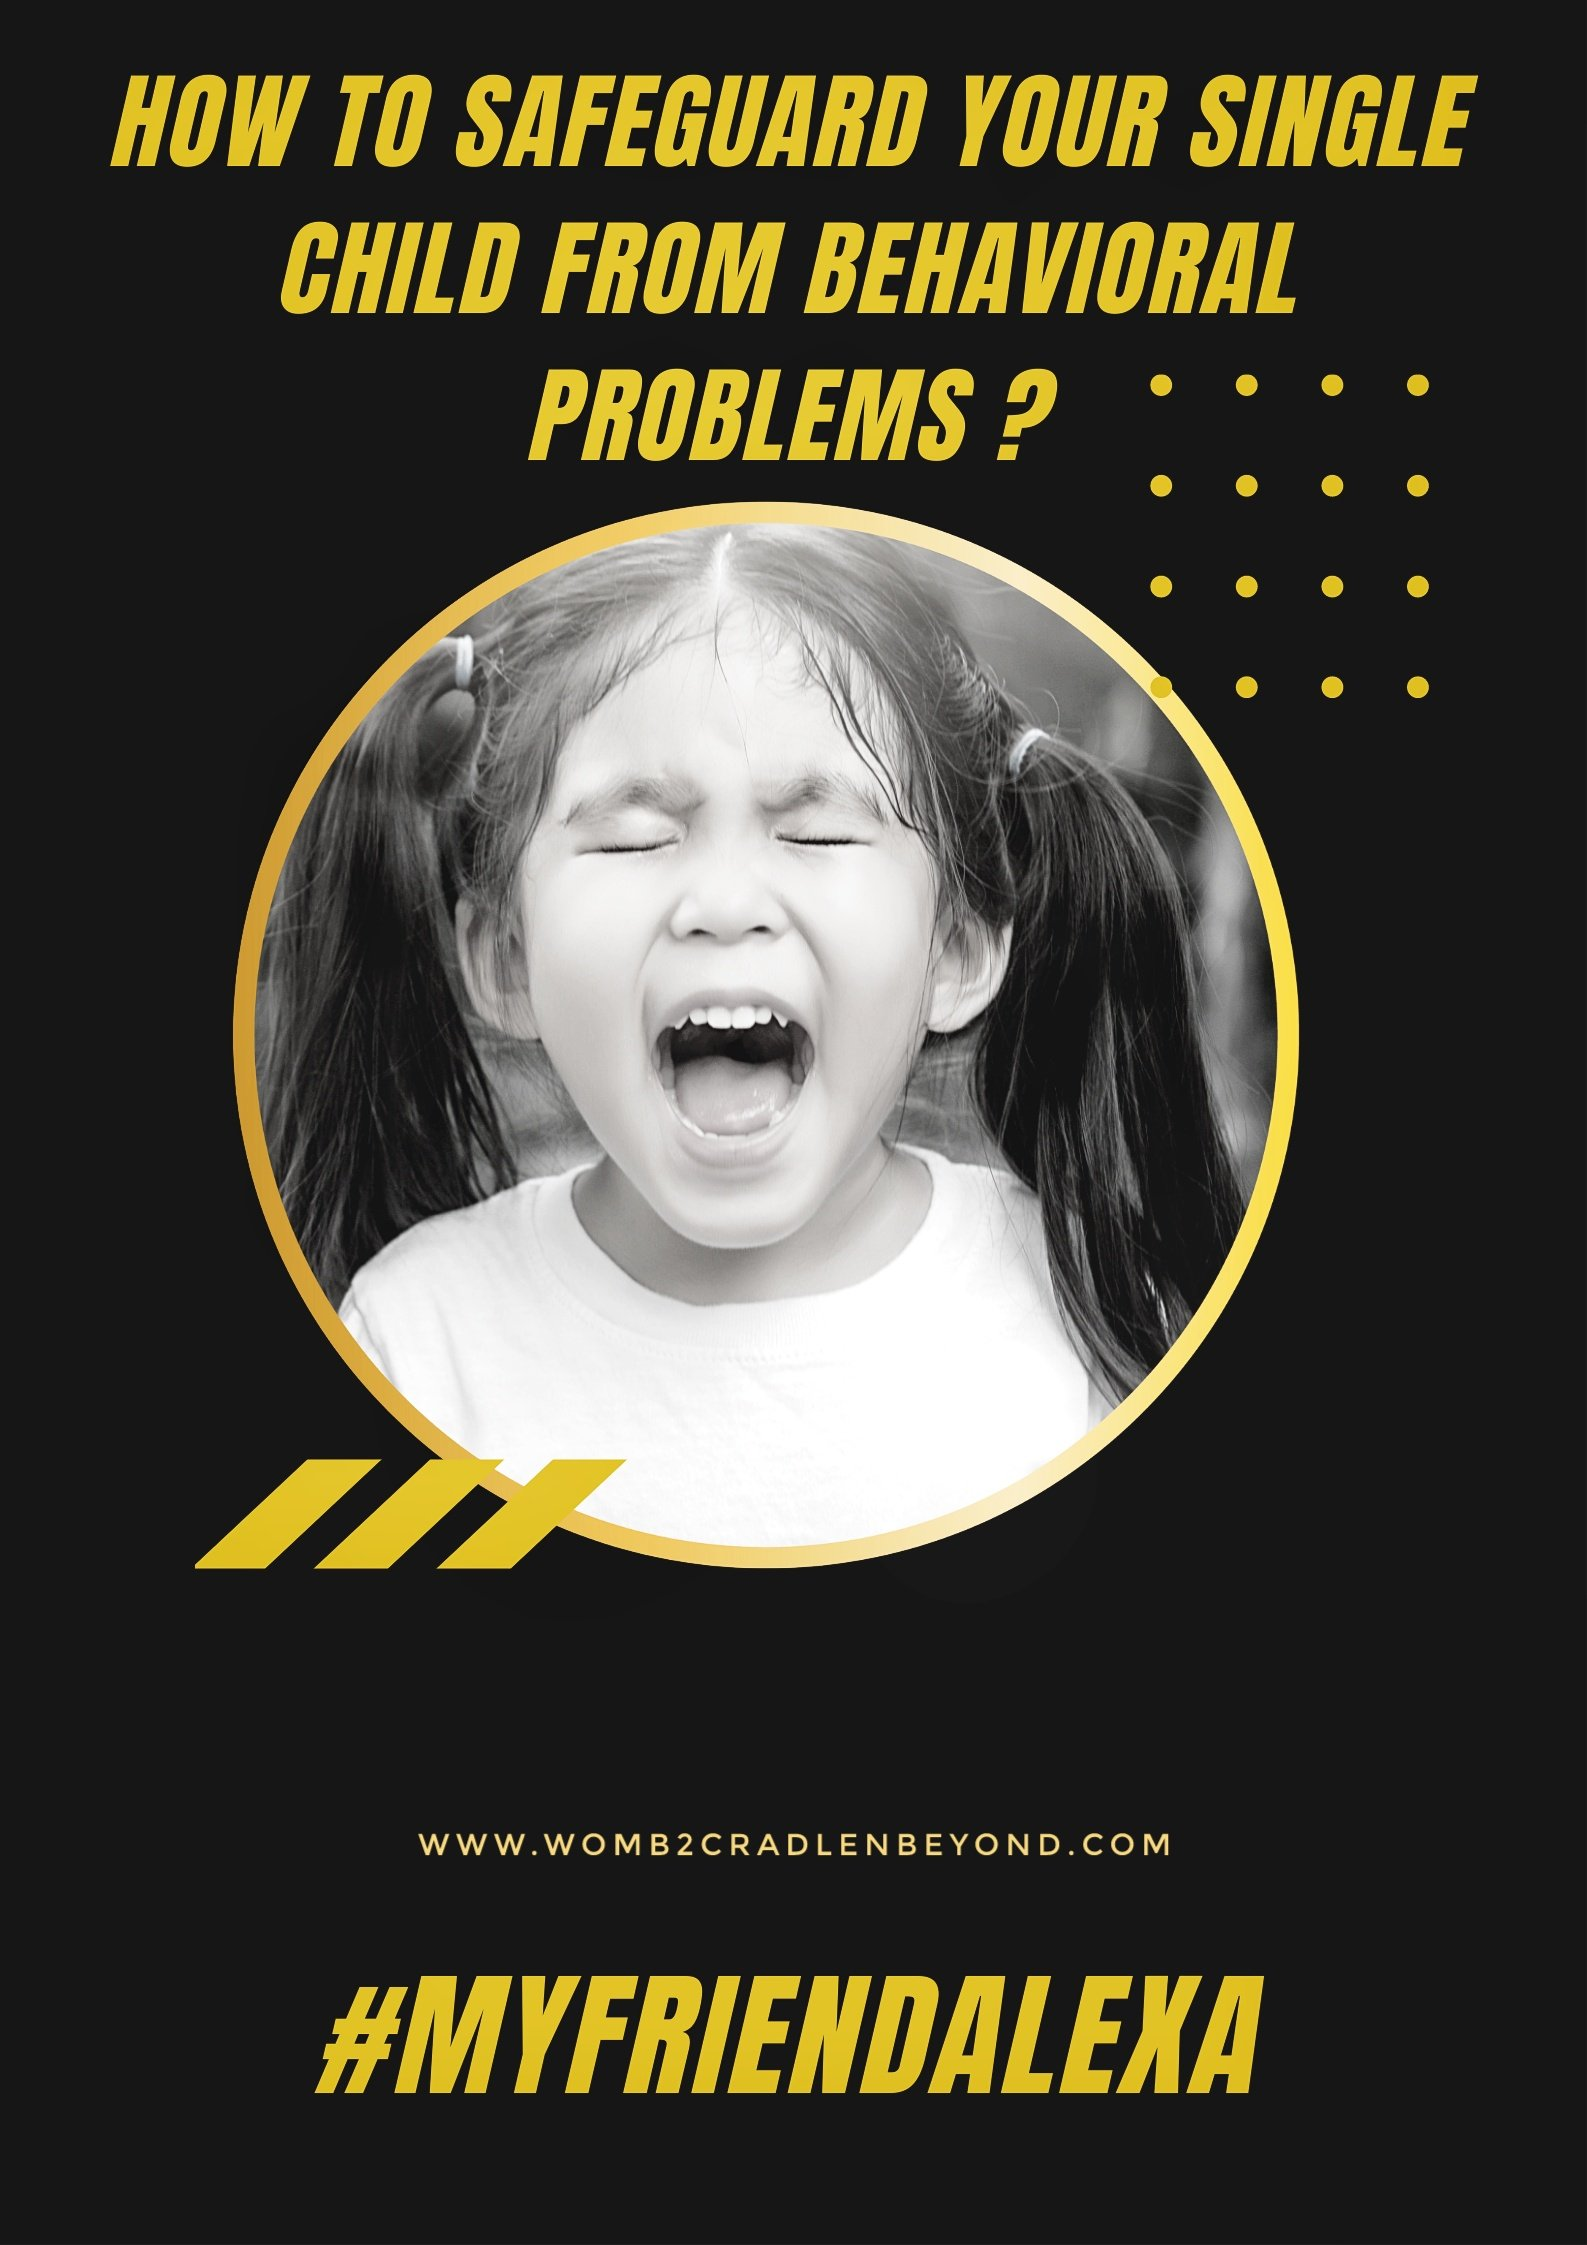 Safeguard single child from behavioral problems